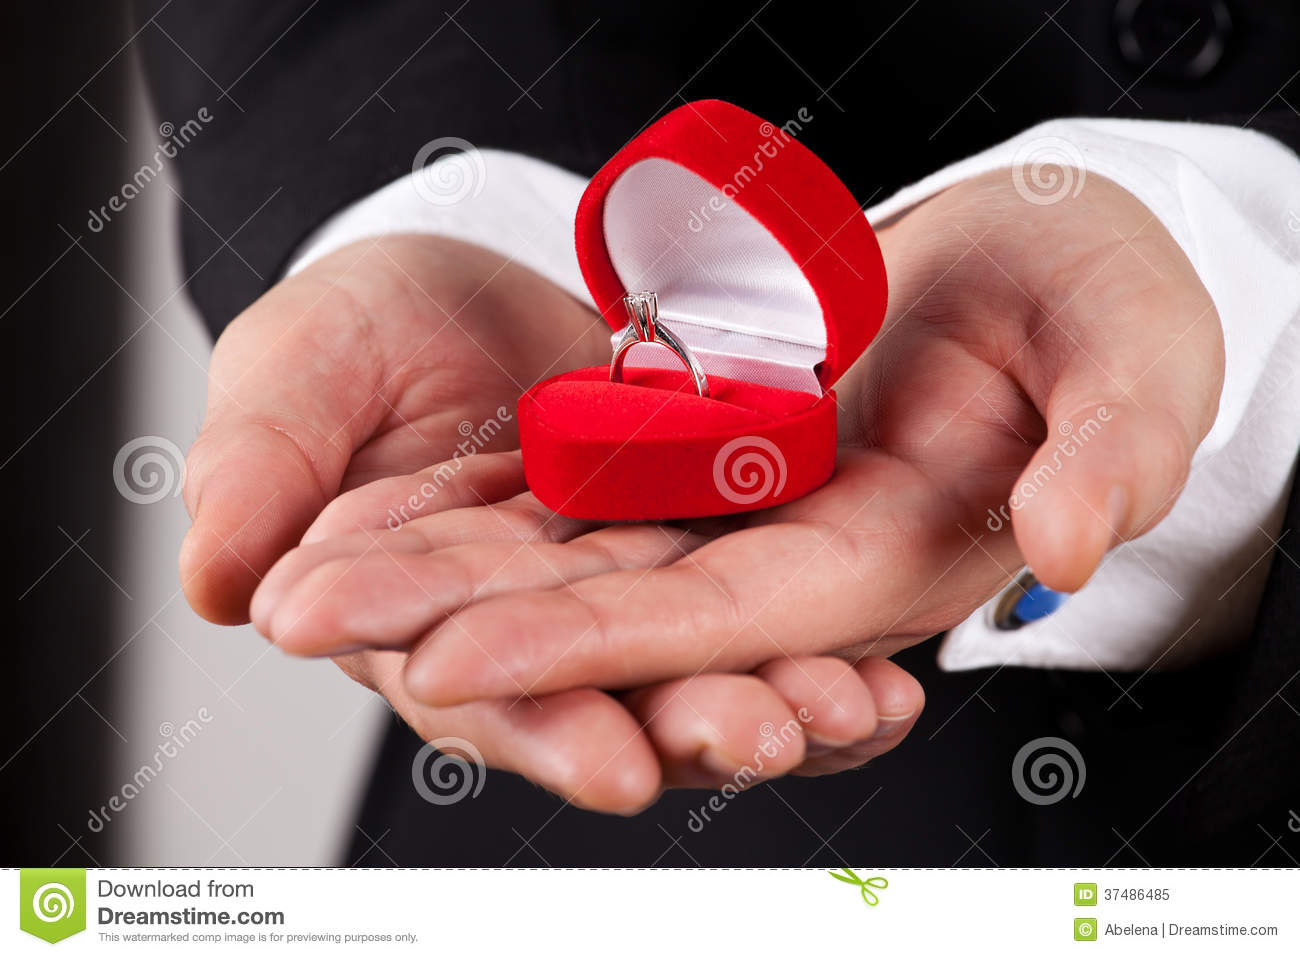 Man In Suit Holding Engagement Ring Stock Image - Image of opening ...